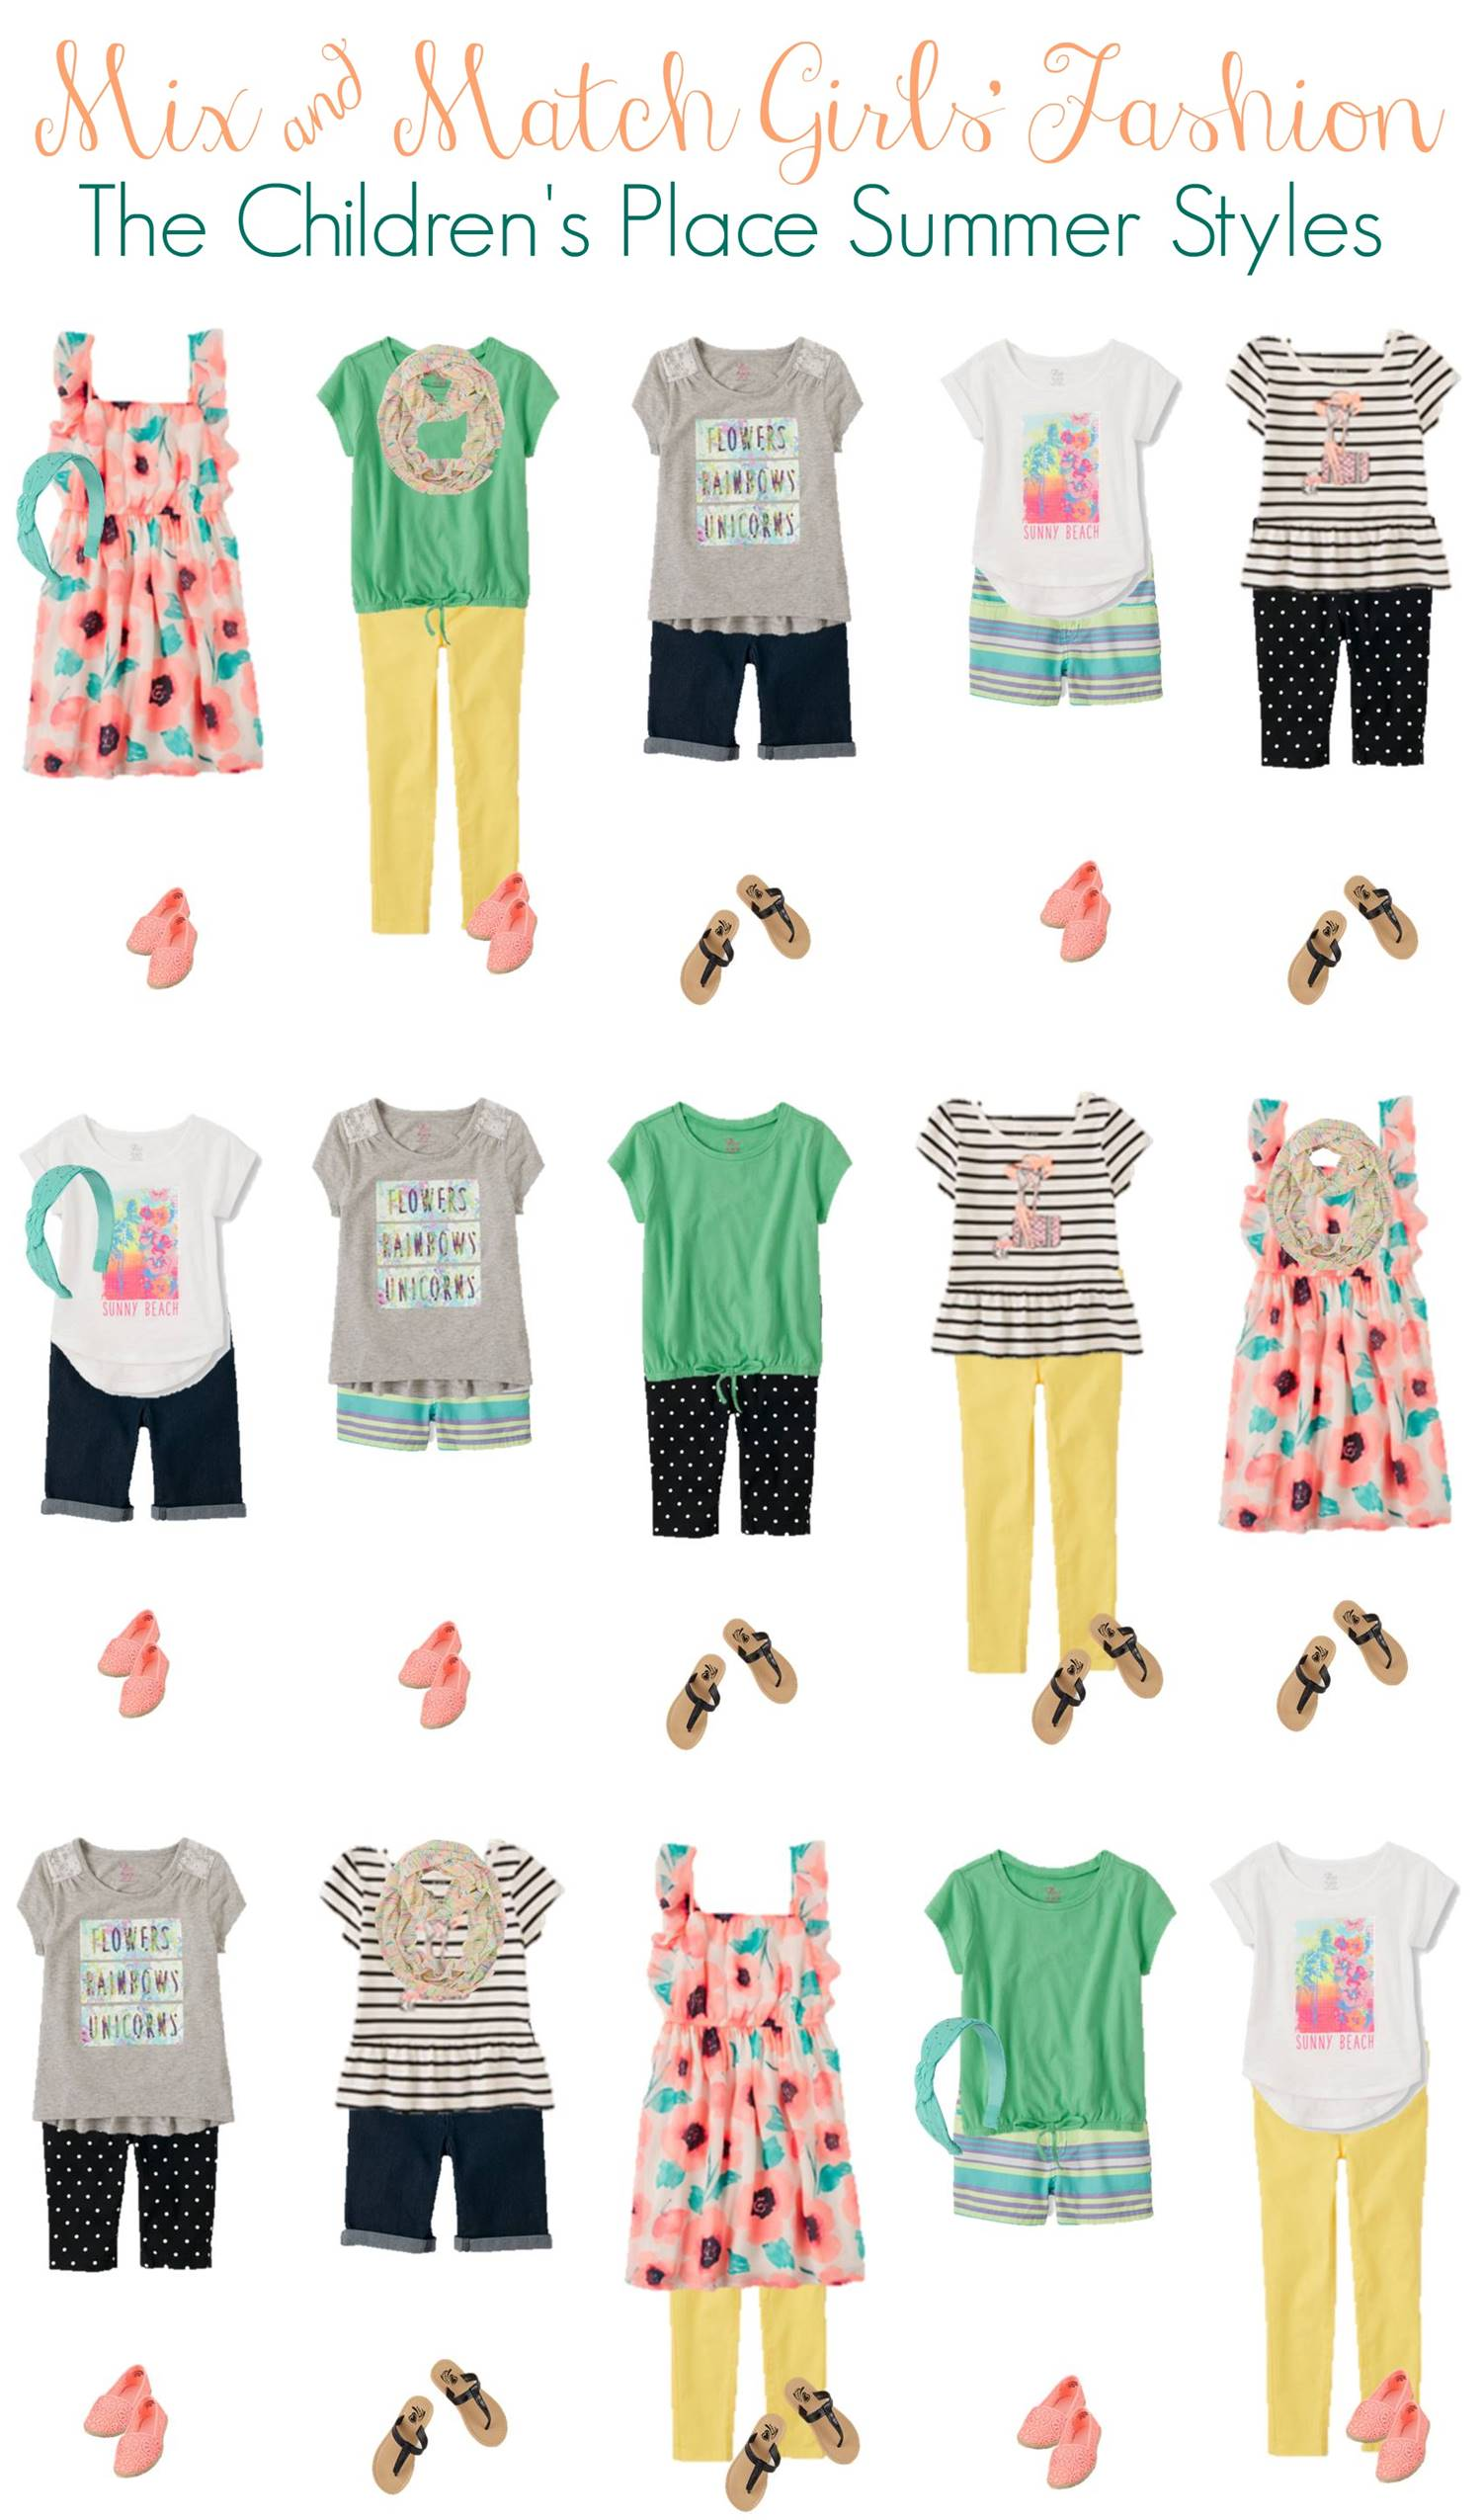 Mix and Match - Girls Summer Styles from TCP